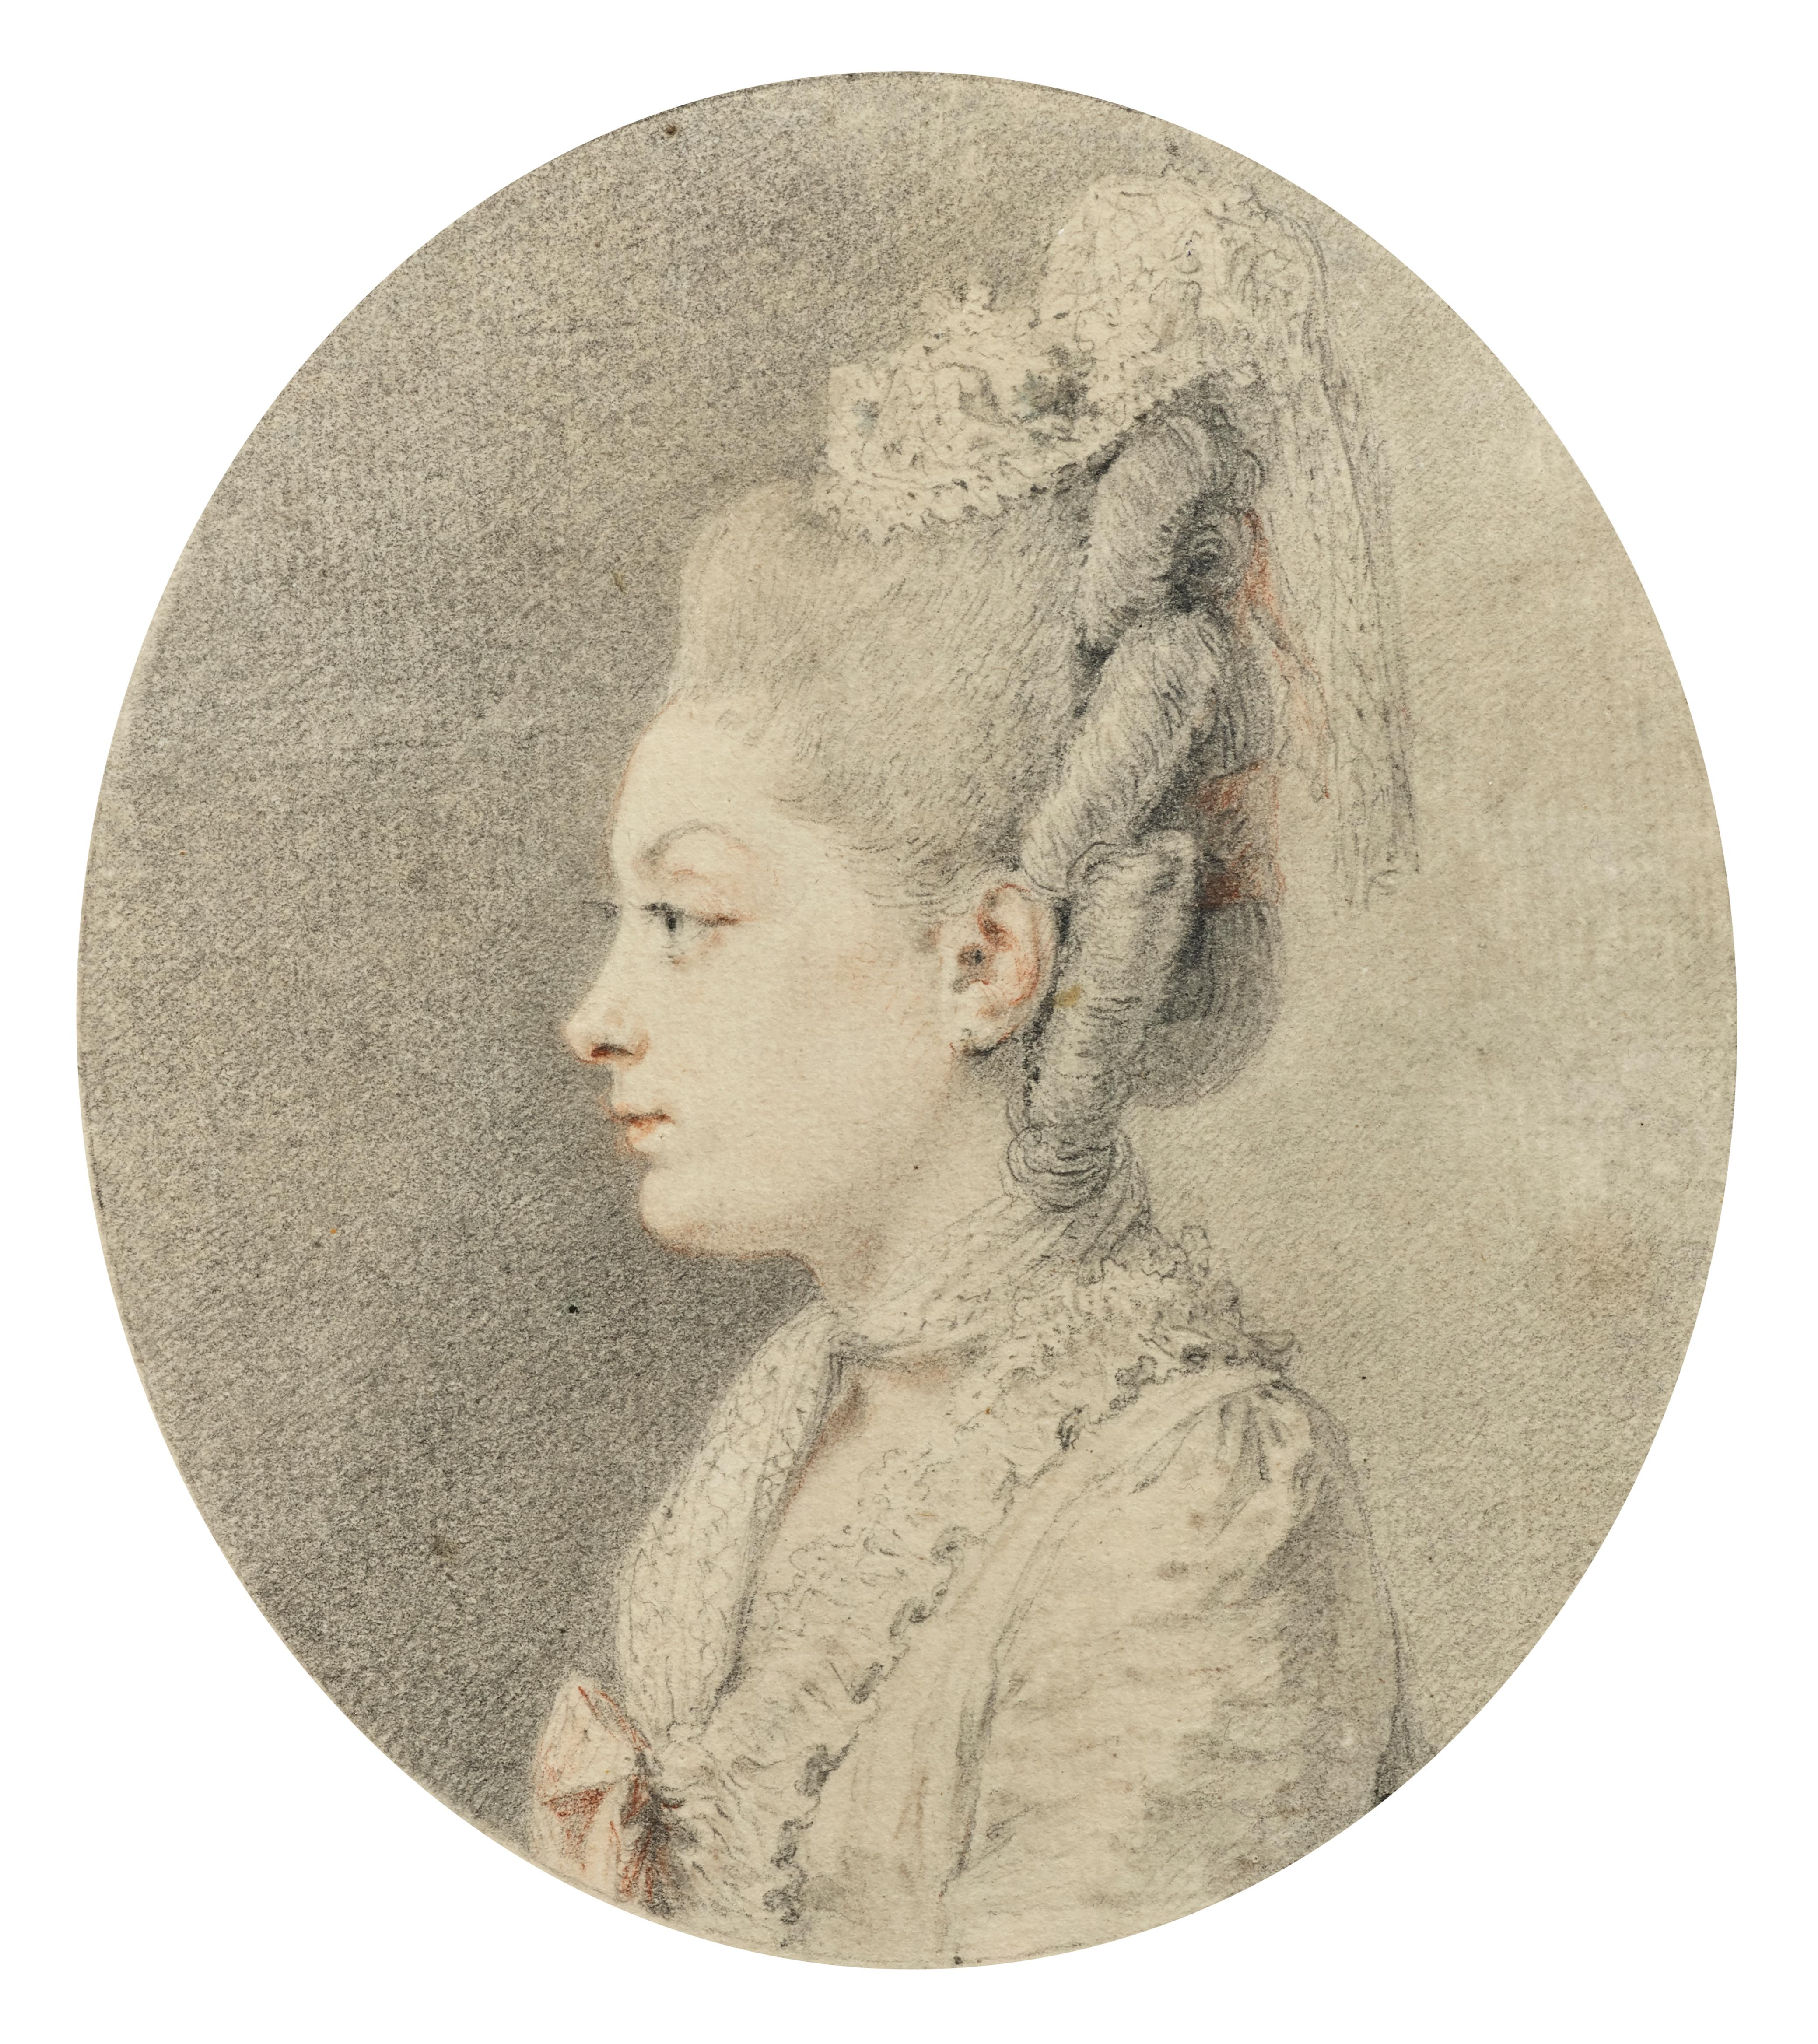 Portrait of a Lady, Drawing Signed and Dated by Augustin de Saint-Aubin